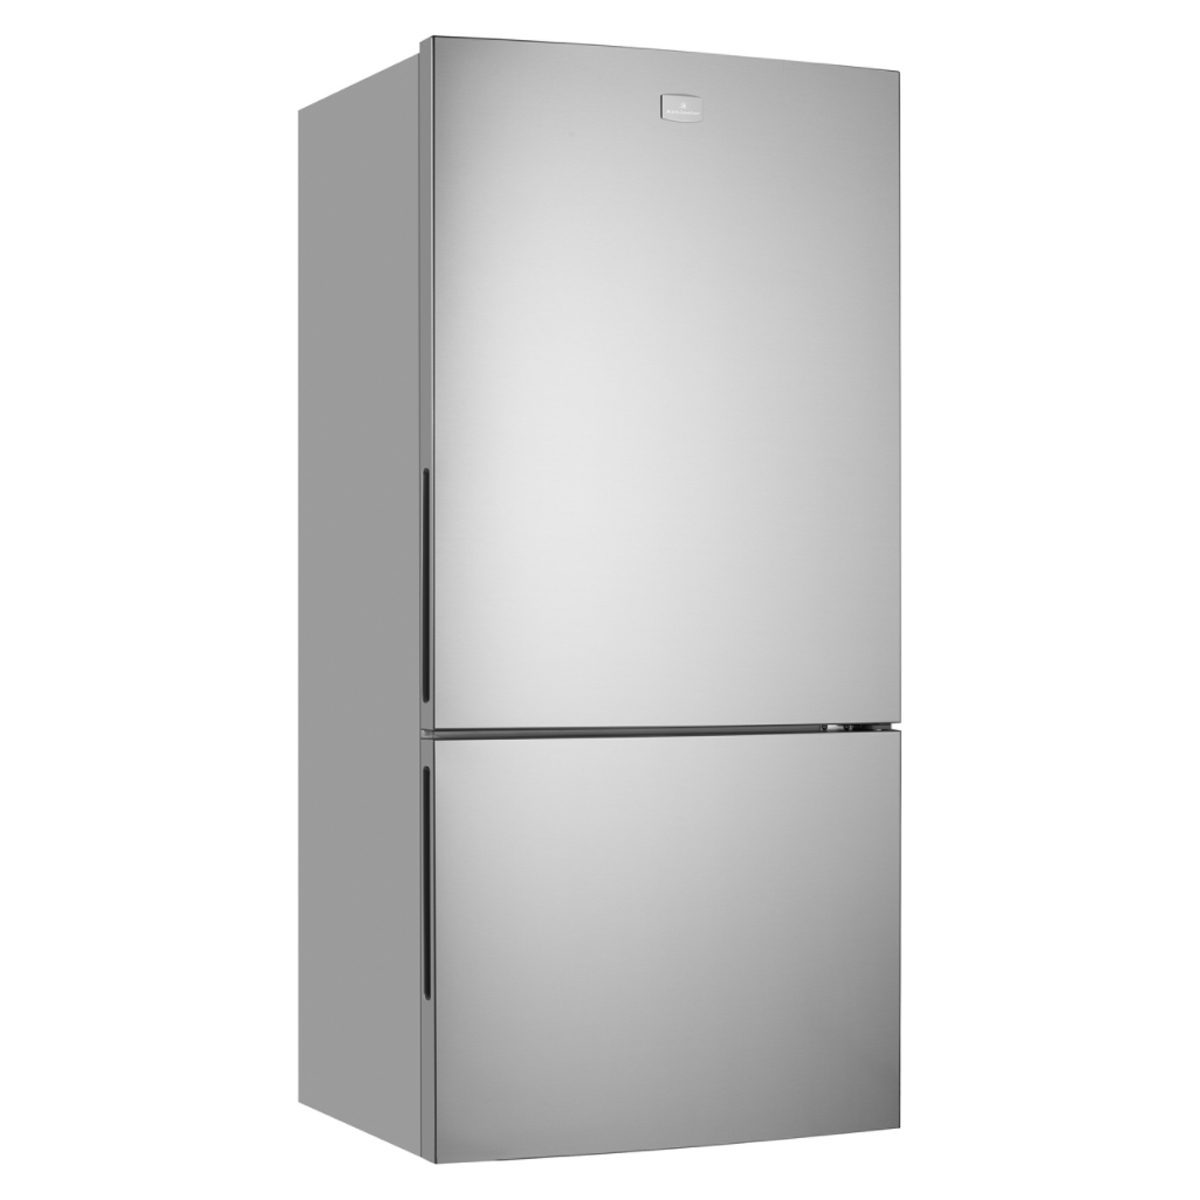 Kelvinator KBM5302AA 530L Bottom Mount Fridge